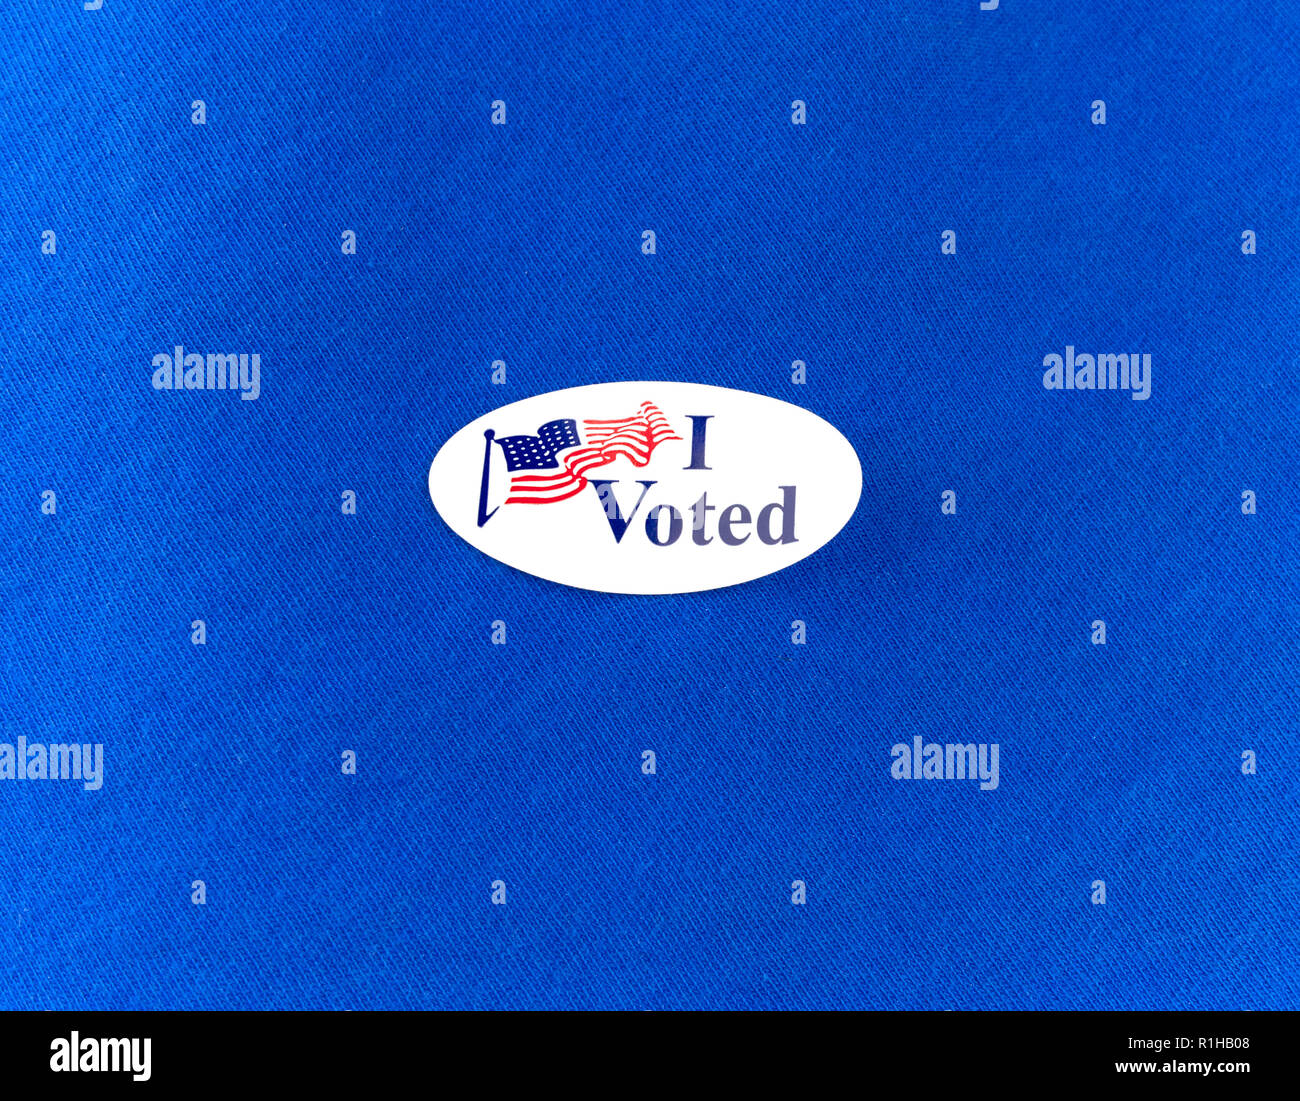 Peeling, curled election voting sticker on a blue cotton clothing shirt. - Stock Image